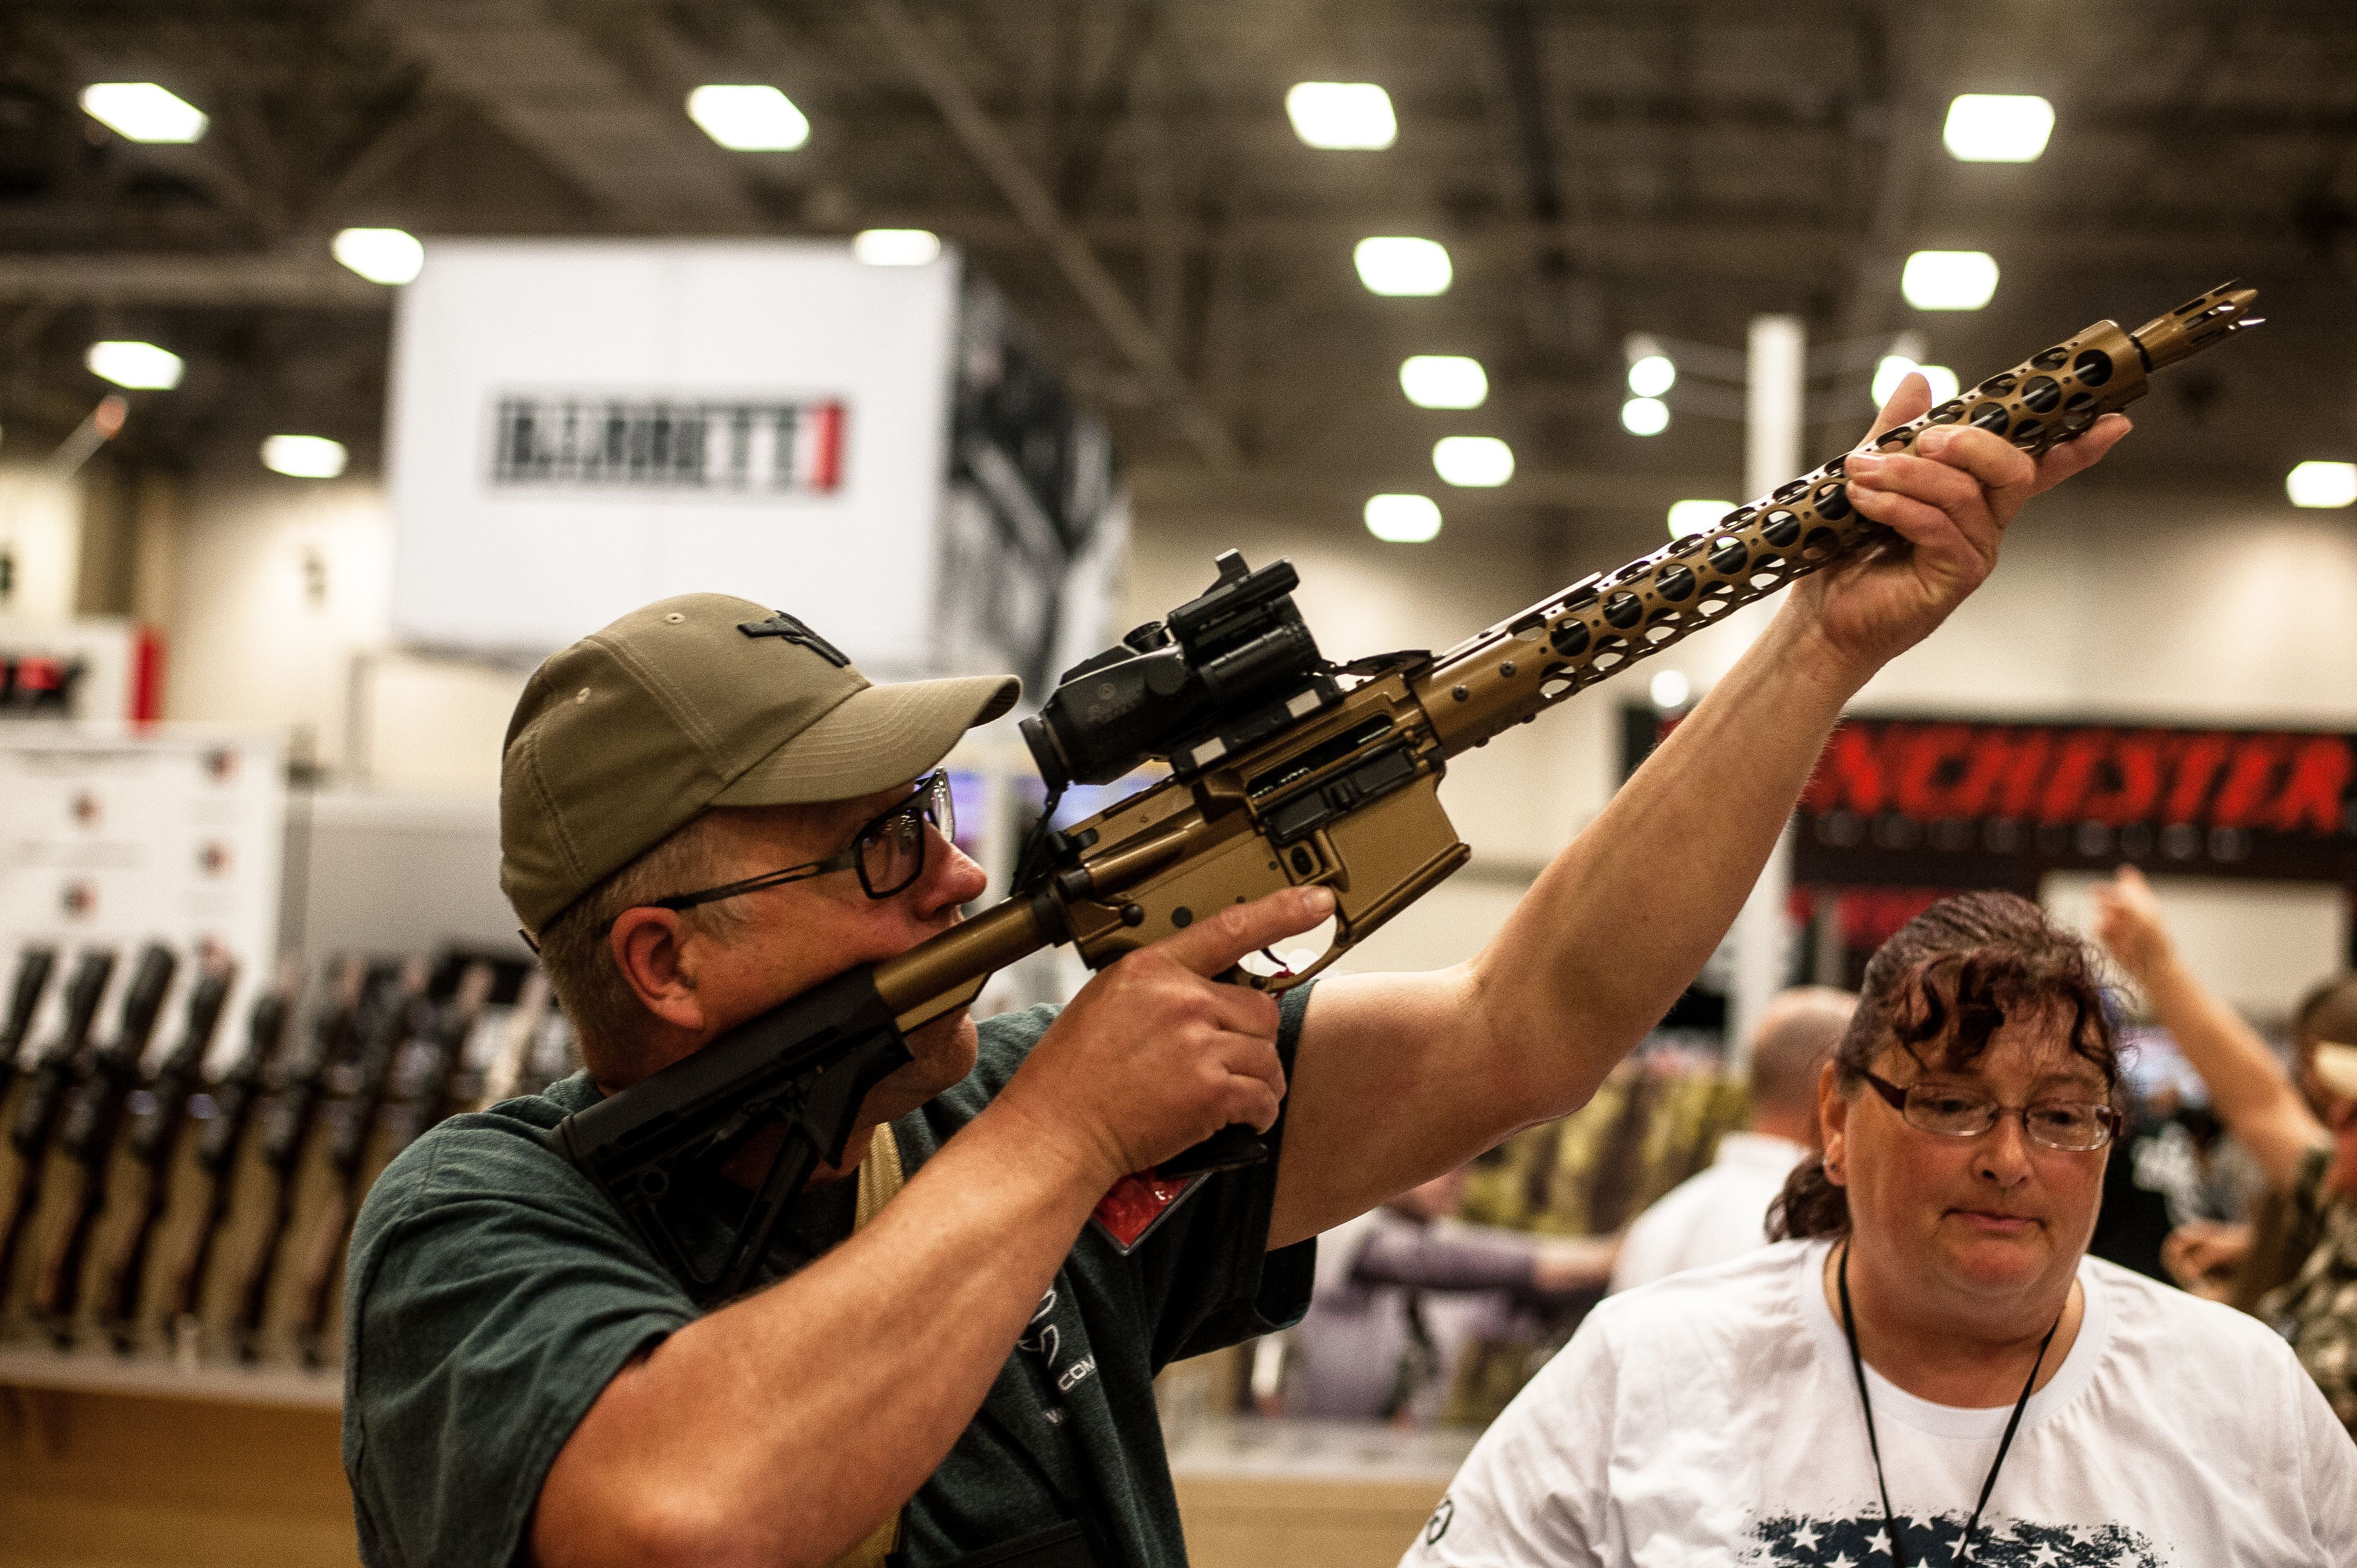 Tim Oelklaus of Missouri holds up a display rifle on the expo floor of the annual NRA meeting in Dallas, TX on May 4, 2018.